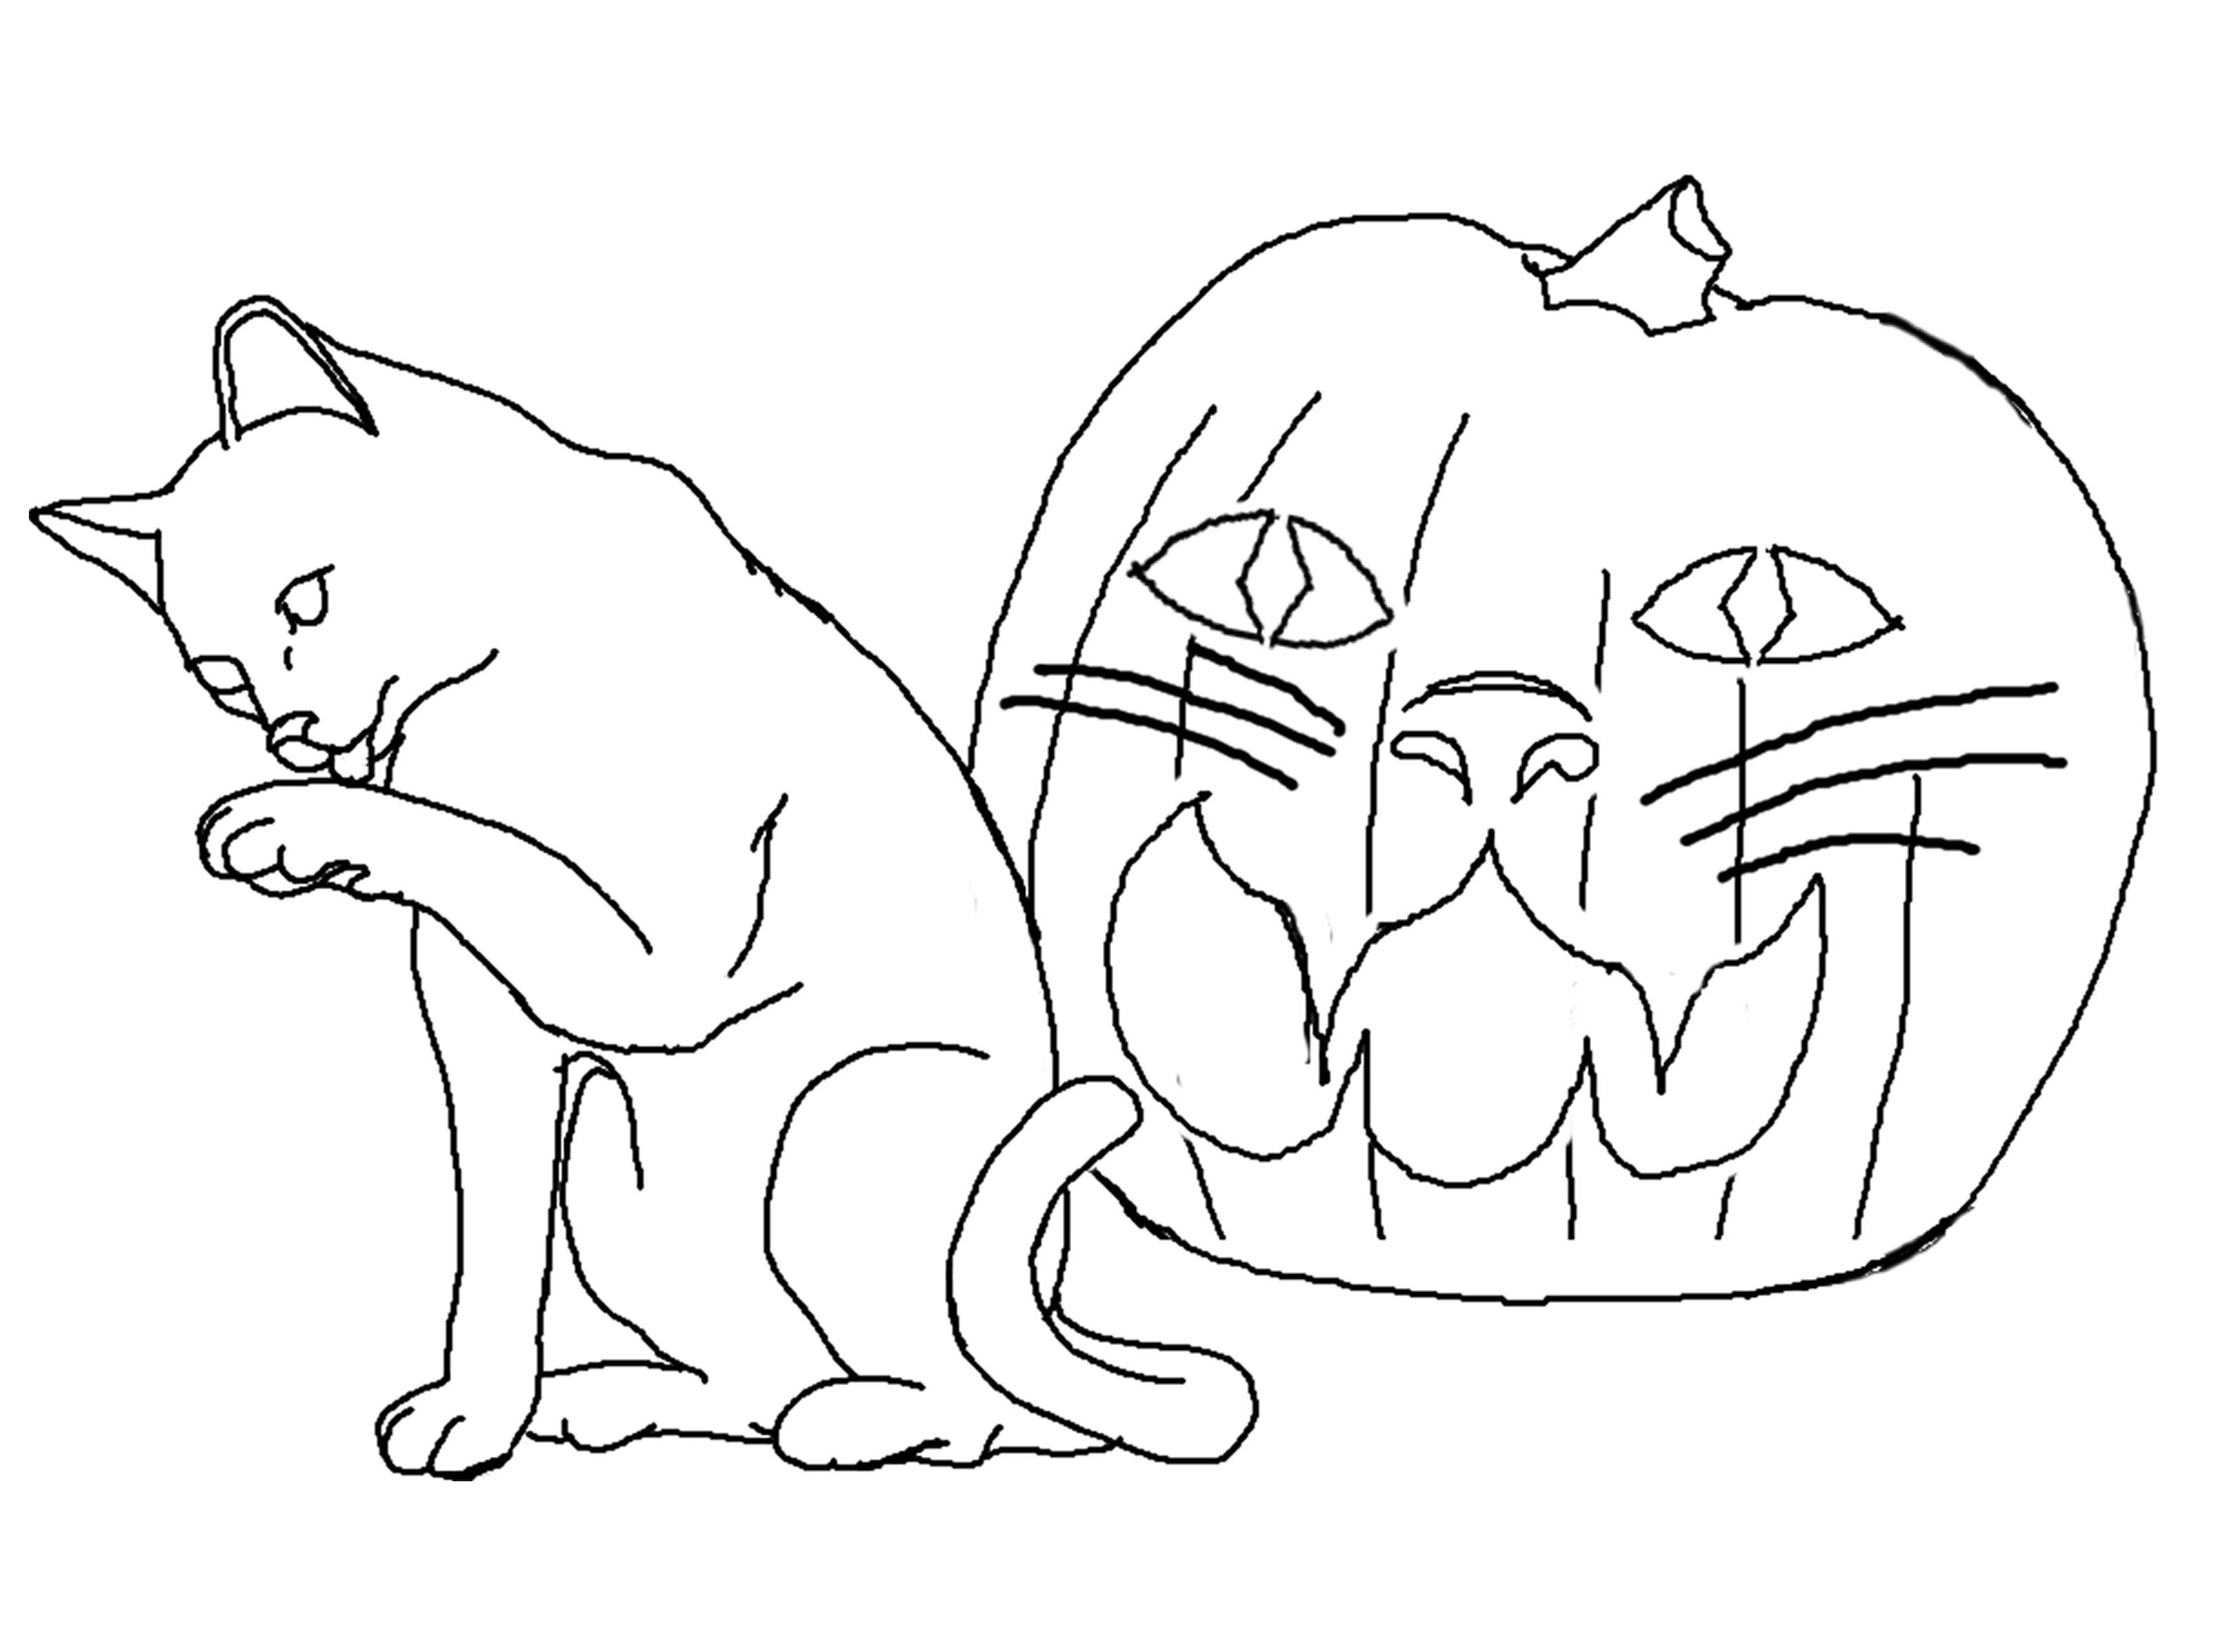 Halloween-Cat-Coloring-Pages.jpg (3232×2400) | coloring pages ...